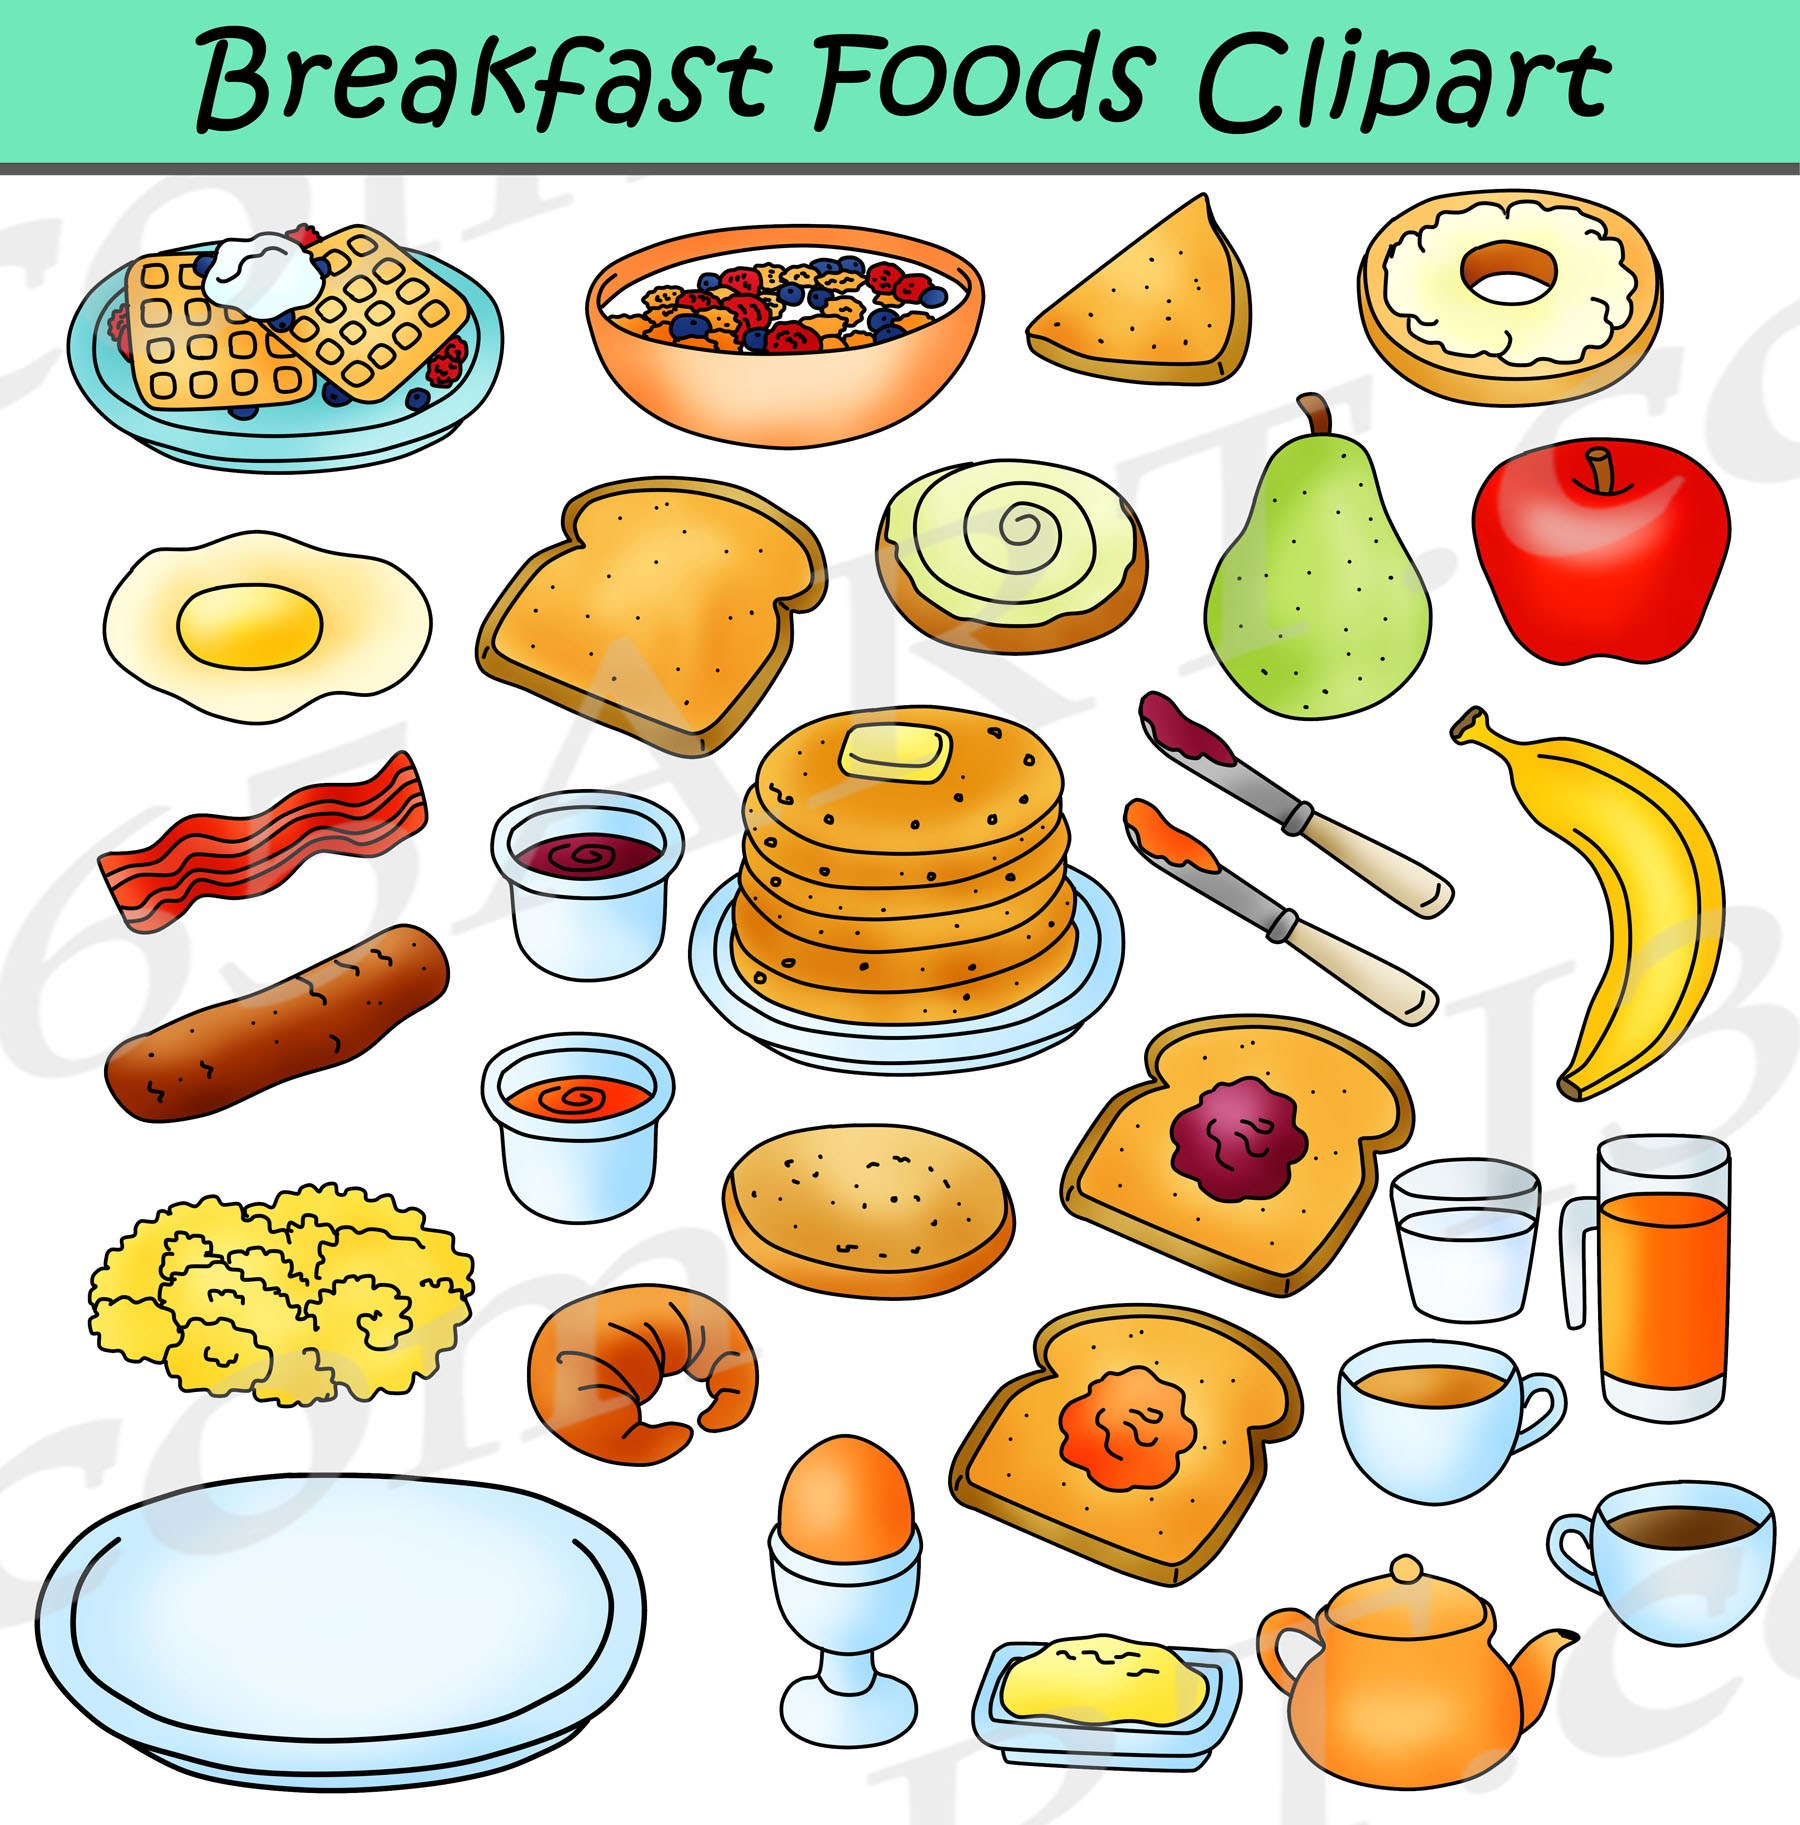 Food clipart for teachers picture library library Food clipart for teachers 5 » Clipart Portal picture library library